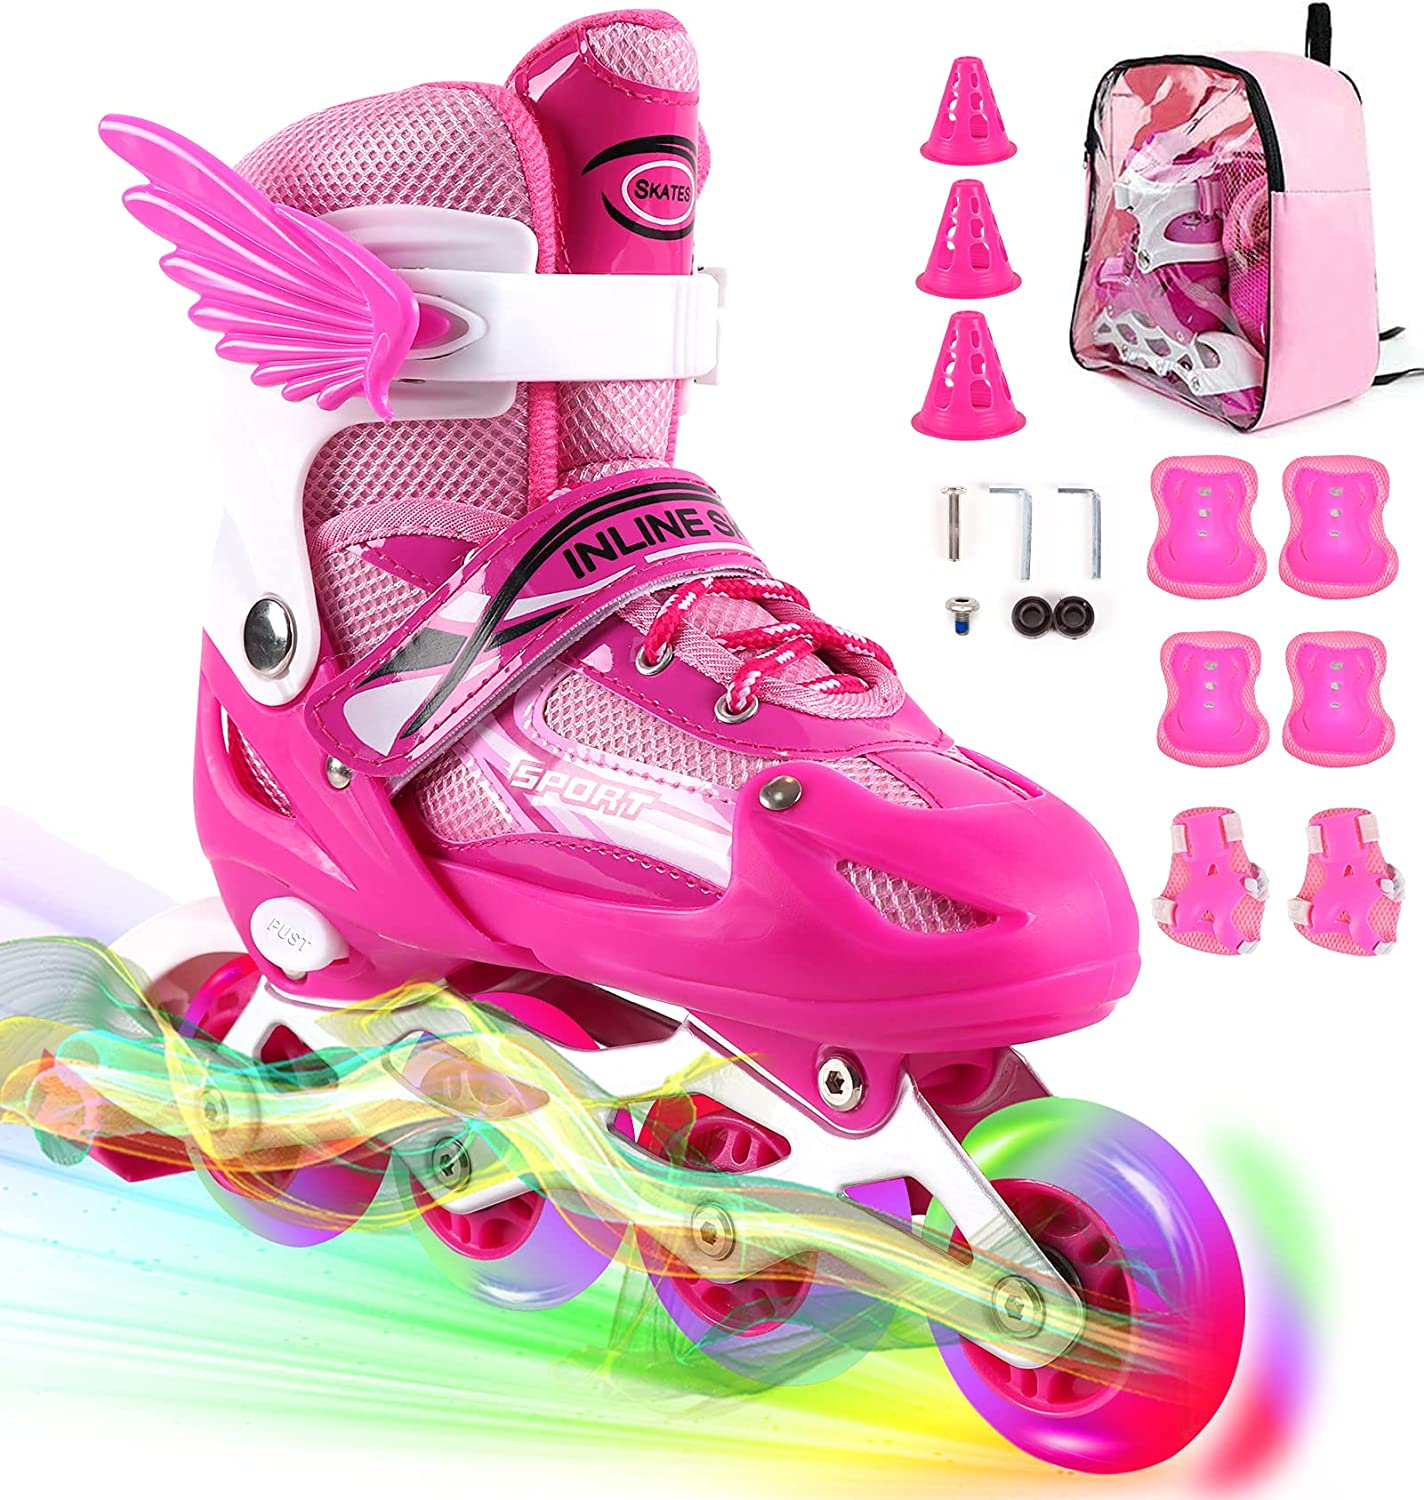 Direct store Sales of SALE items from new works ZALALOVA Kids Adjustable Inline Skates Roller and Durable Safe